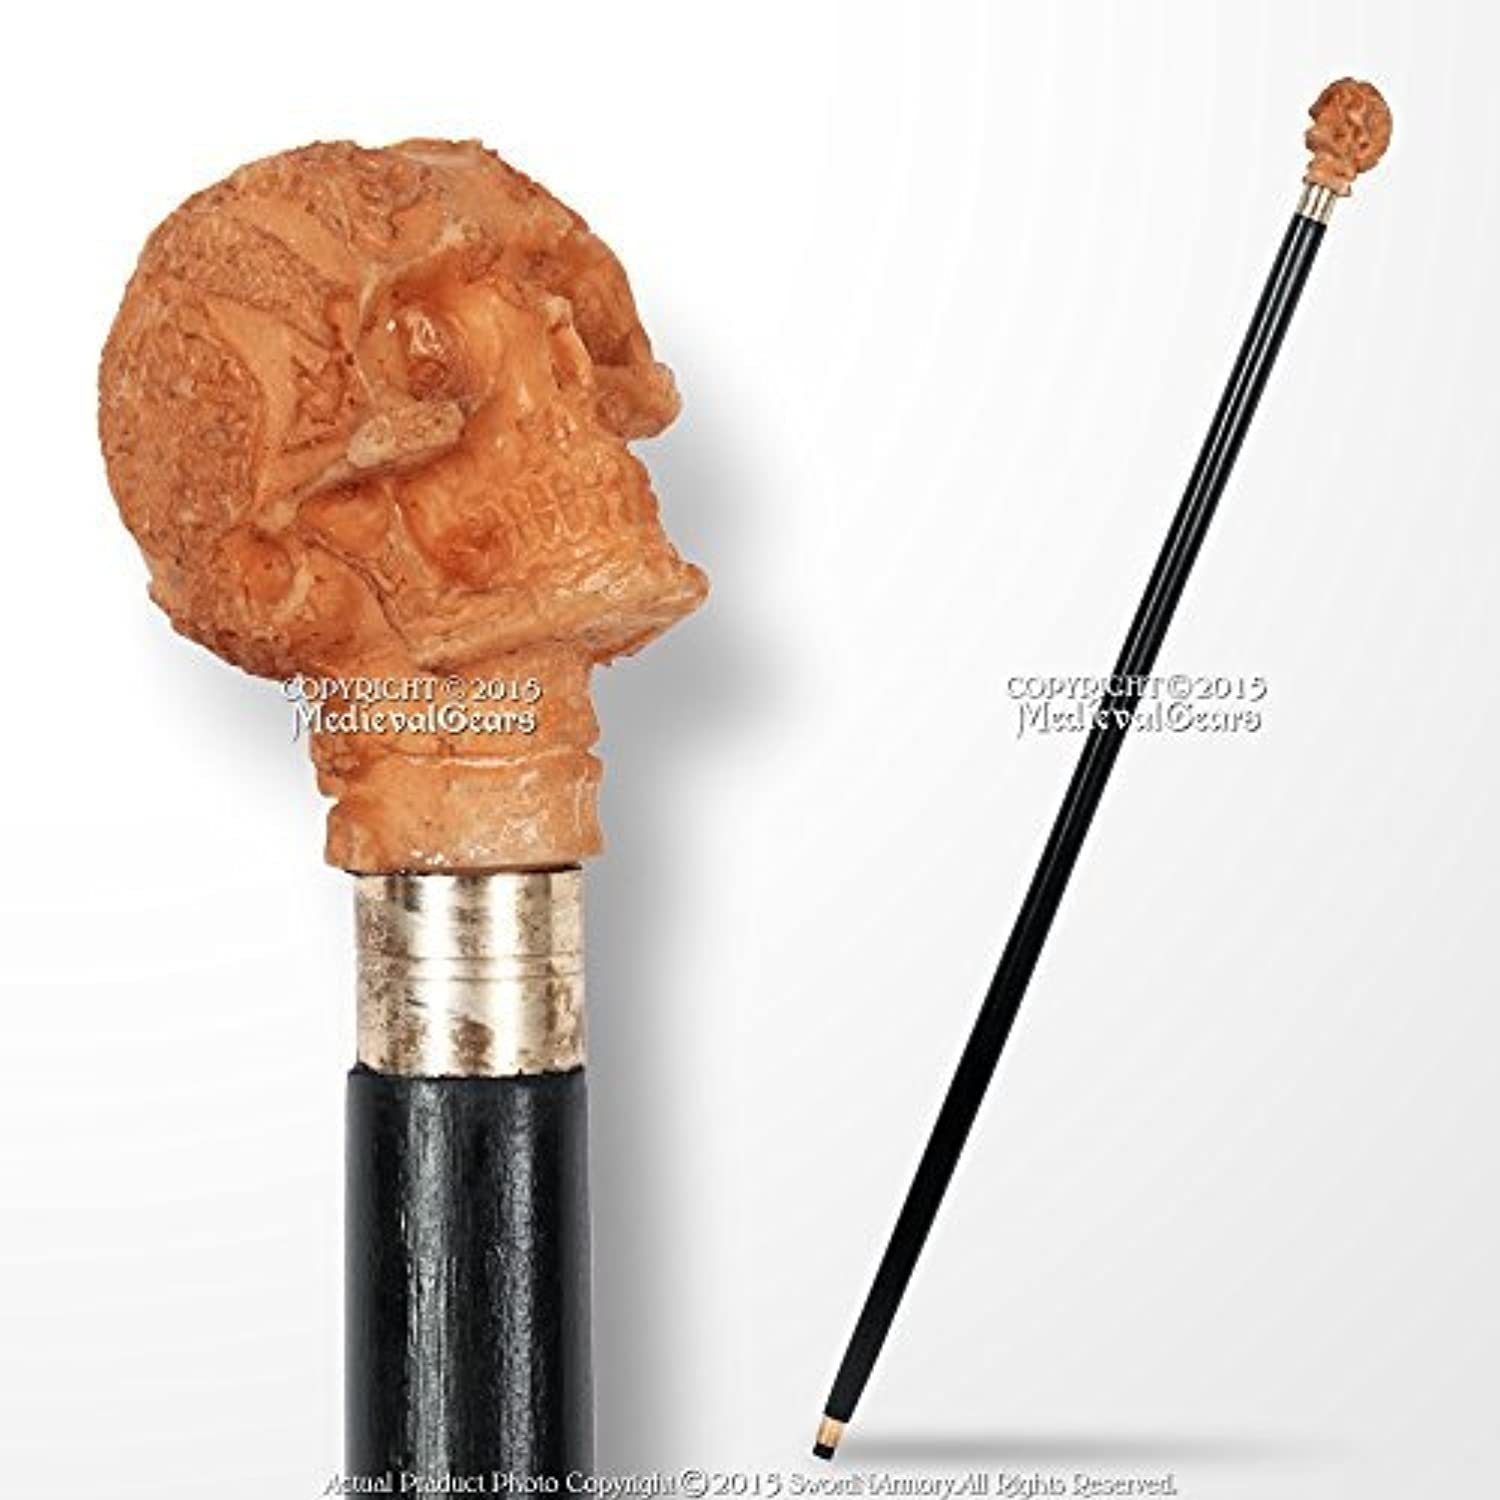 Medieval Gears Brand 36 Black Solid Wooden Shaft Walking Cane Fantasy Stick with Skull Head Handle by Medieval Gears